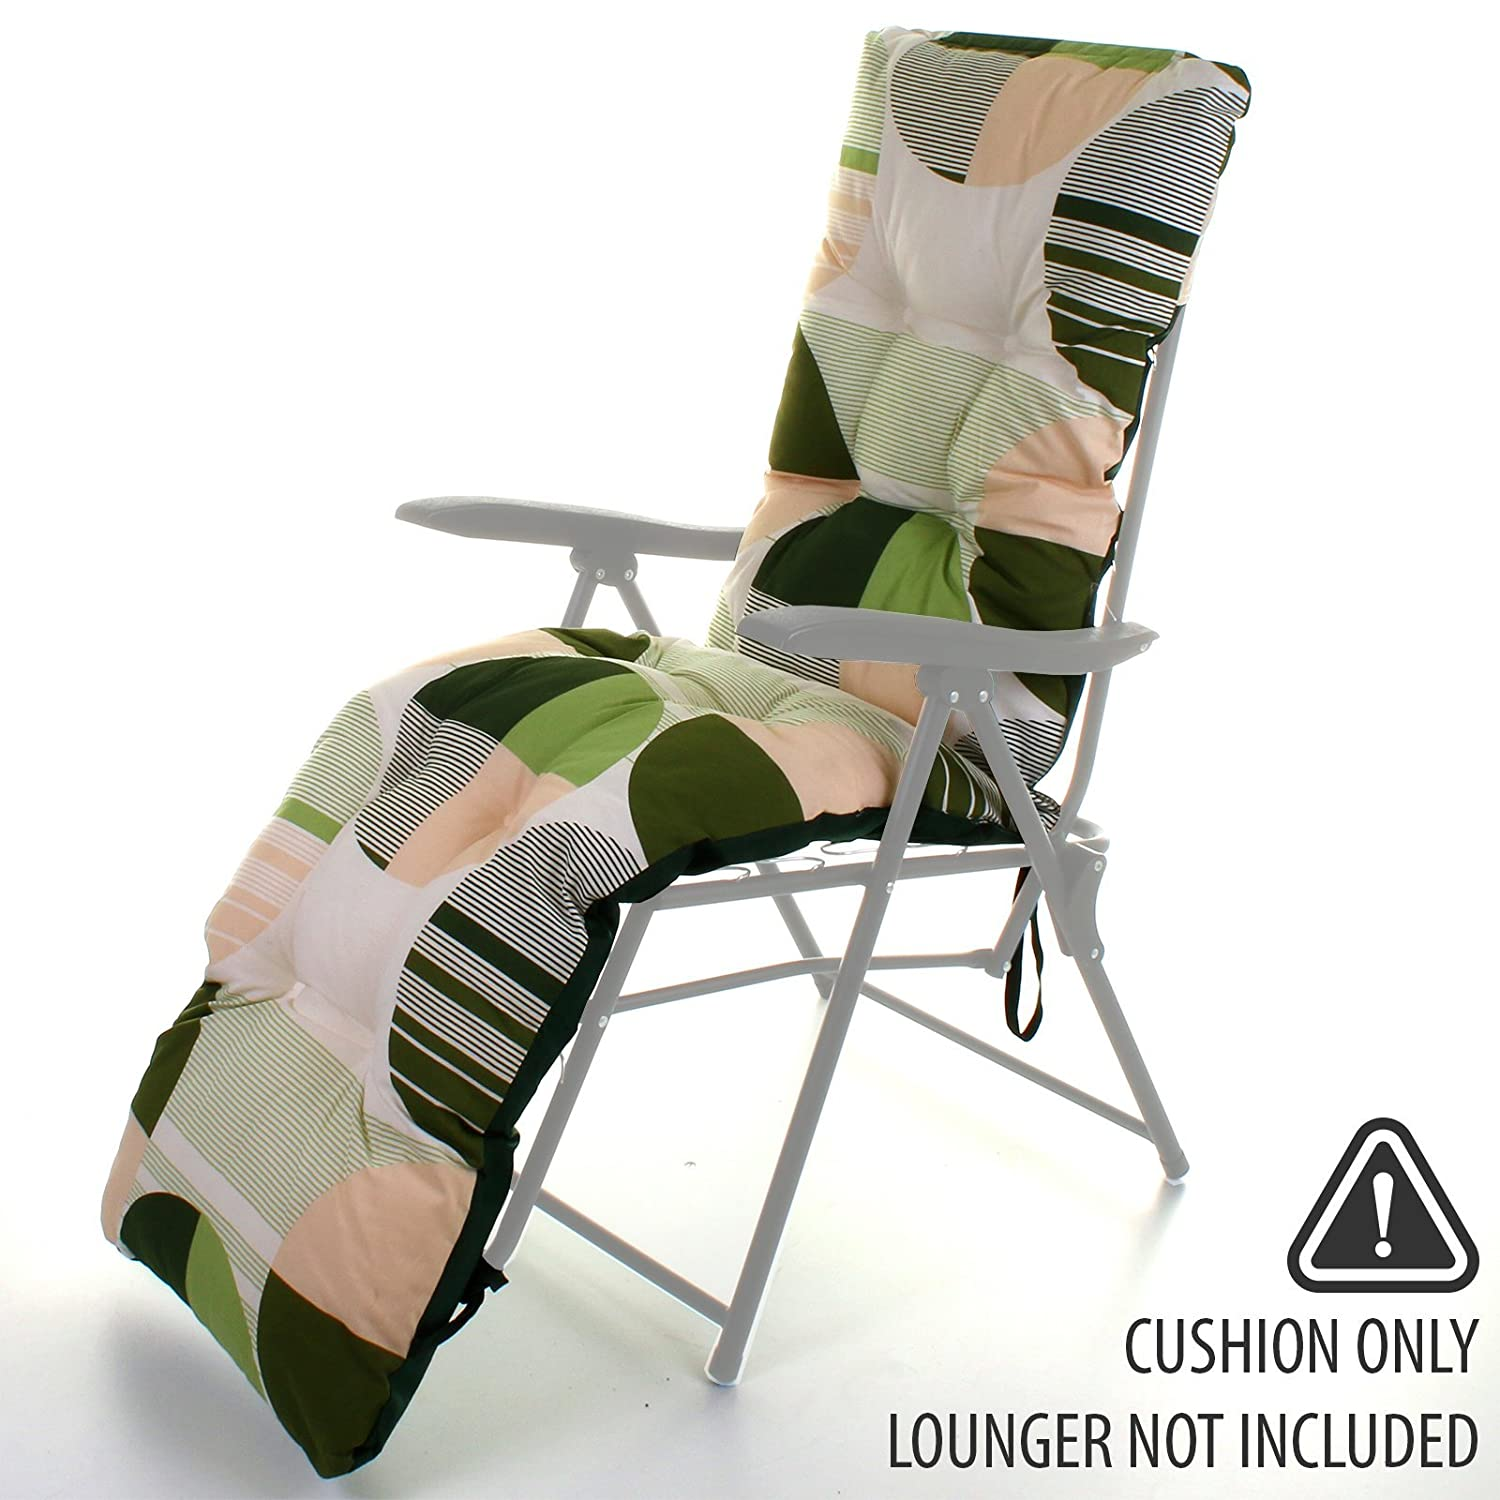 Replacement Outdoor Garden Sun Lounger Cushion Thick Padded Spare Patio Recliner Amazon.co.uk Garden u0026 Outdoors  sc 1 st  Amazon UK & Replacement Outdoor Garden Sun Lounger Cushion Thick Padded Spare ... islam-shia.org